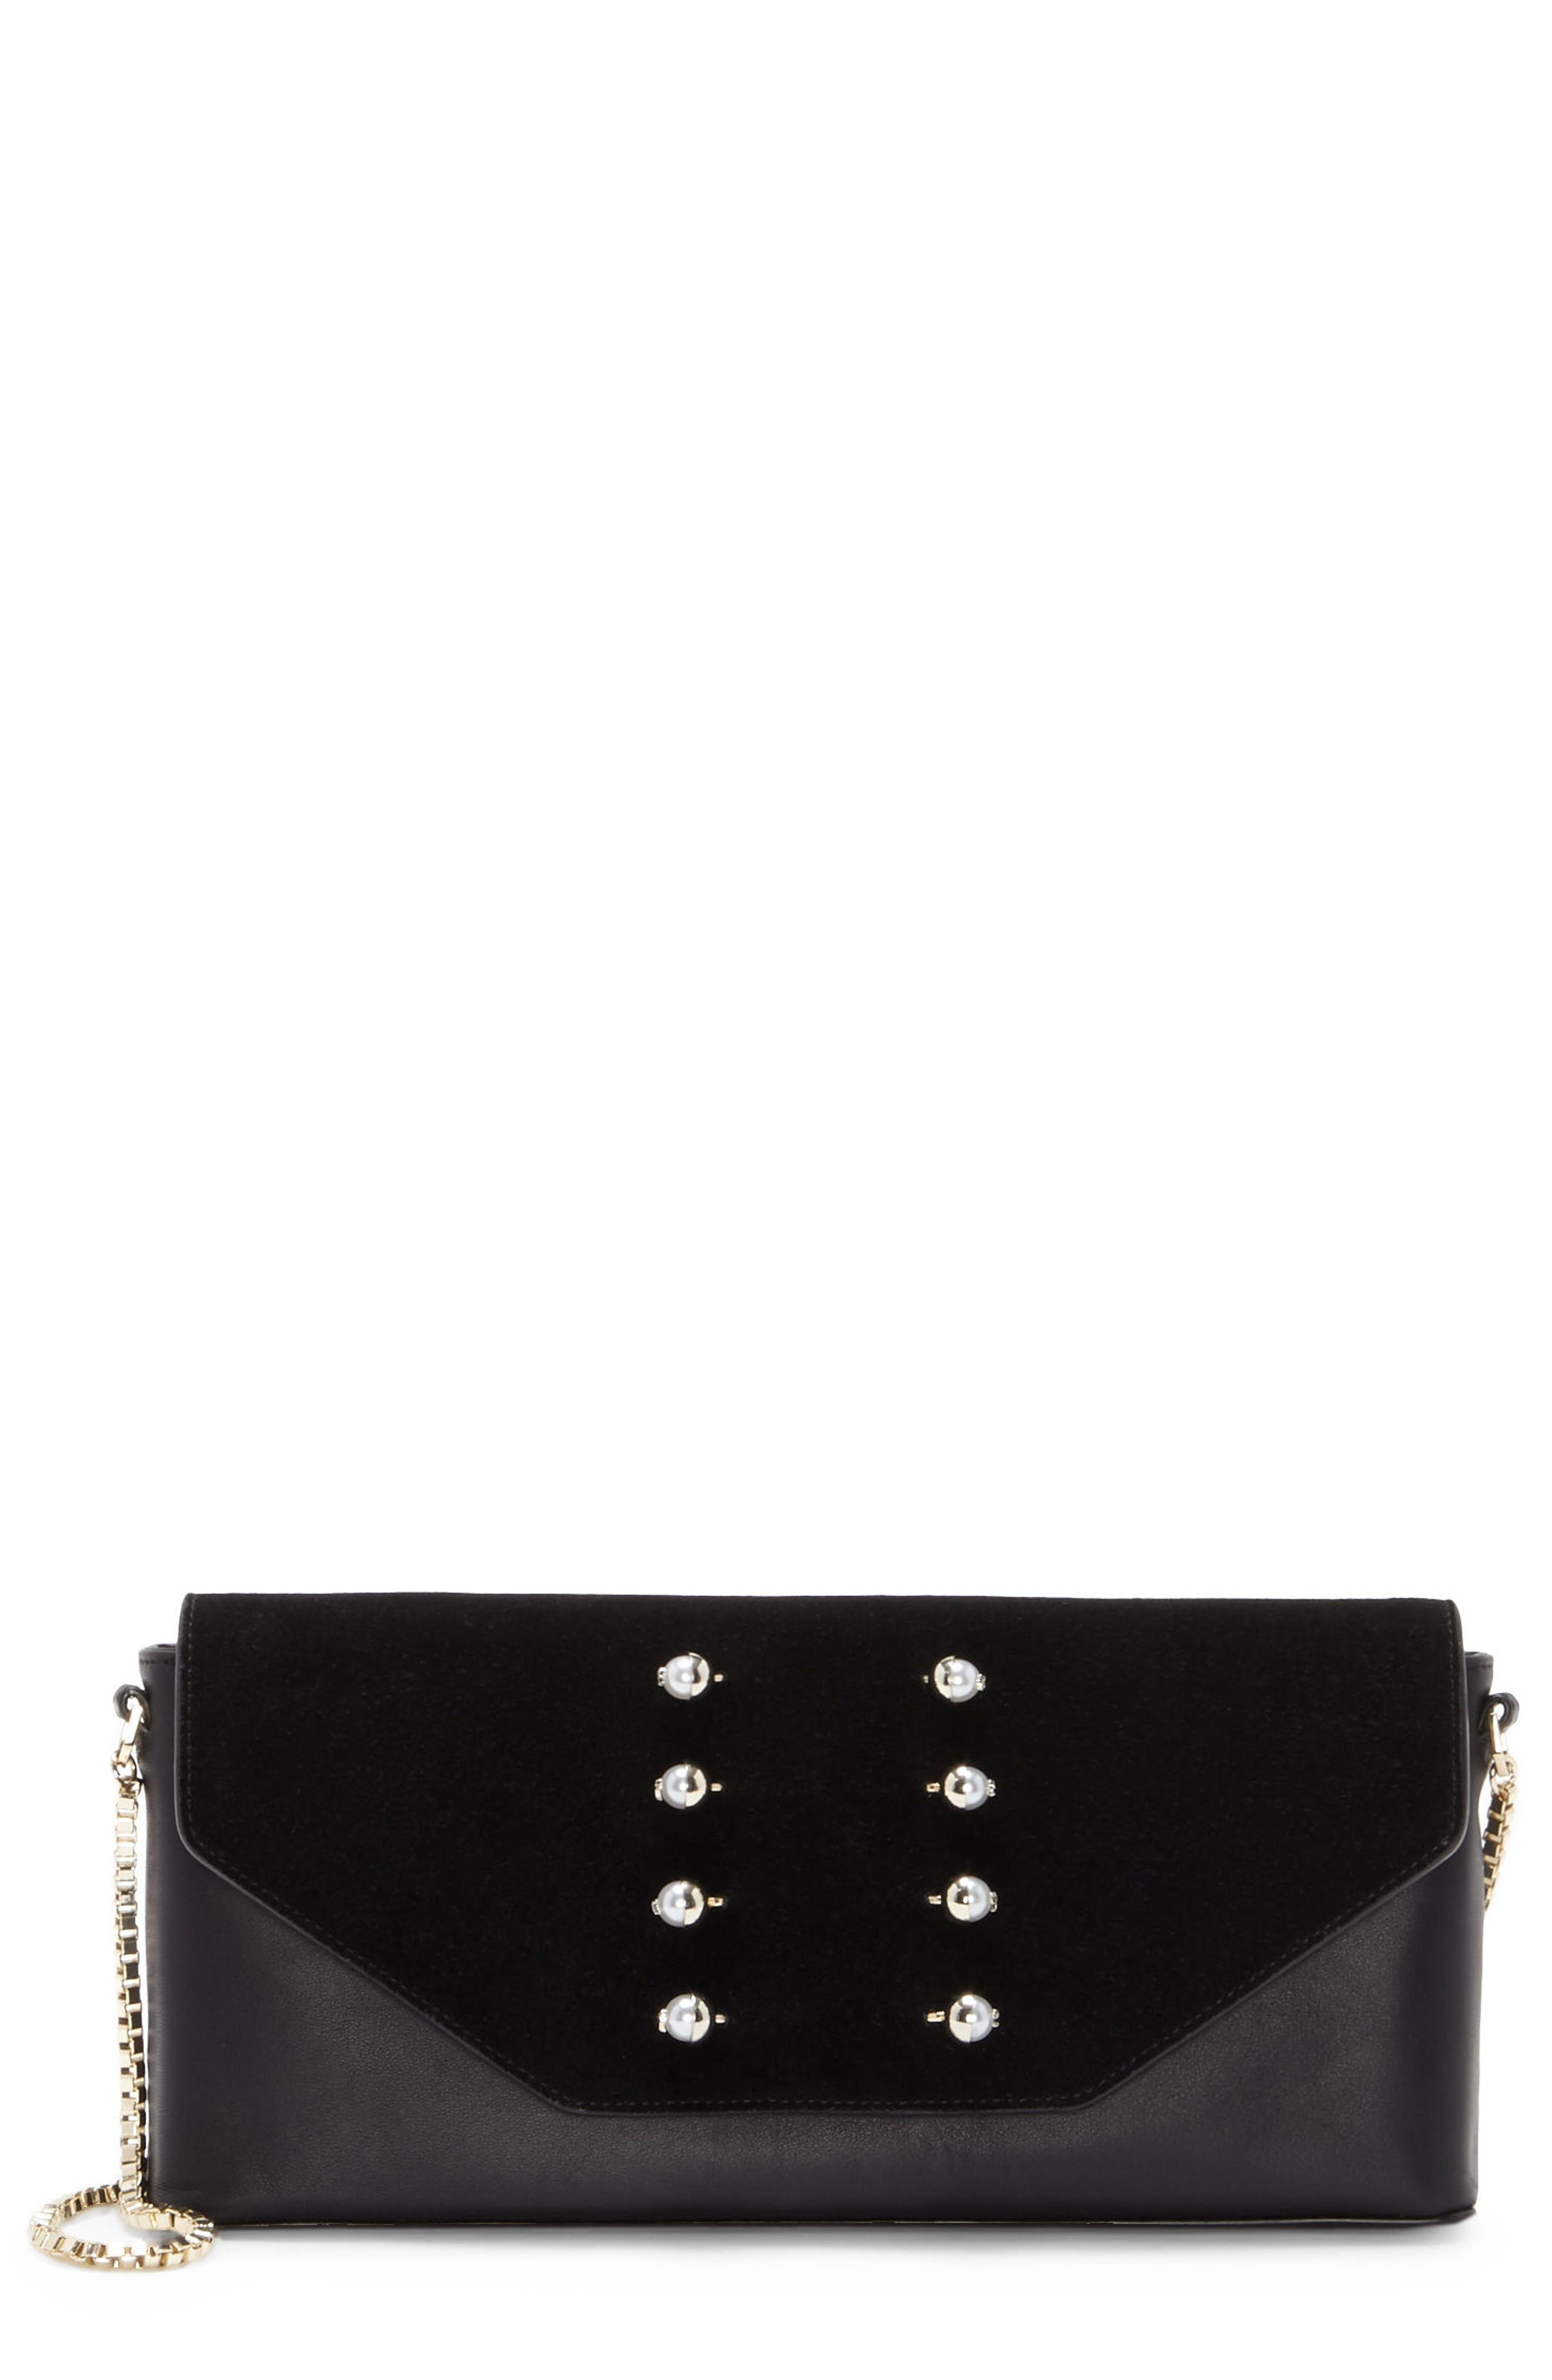 Alternate Image 1 Selected - Louise et Cie Gya Imitation Pearl Embellished Suede & Leather Clutch